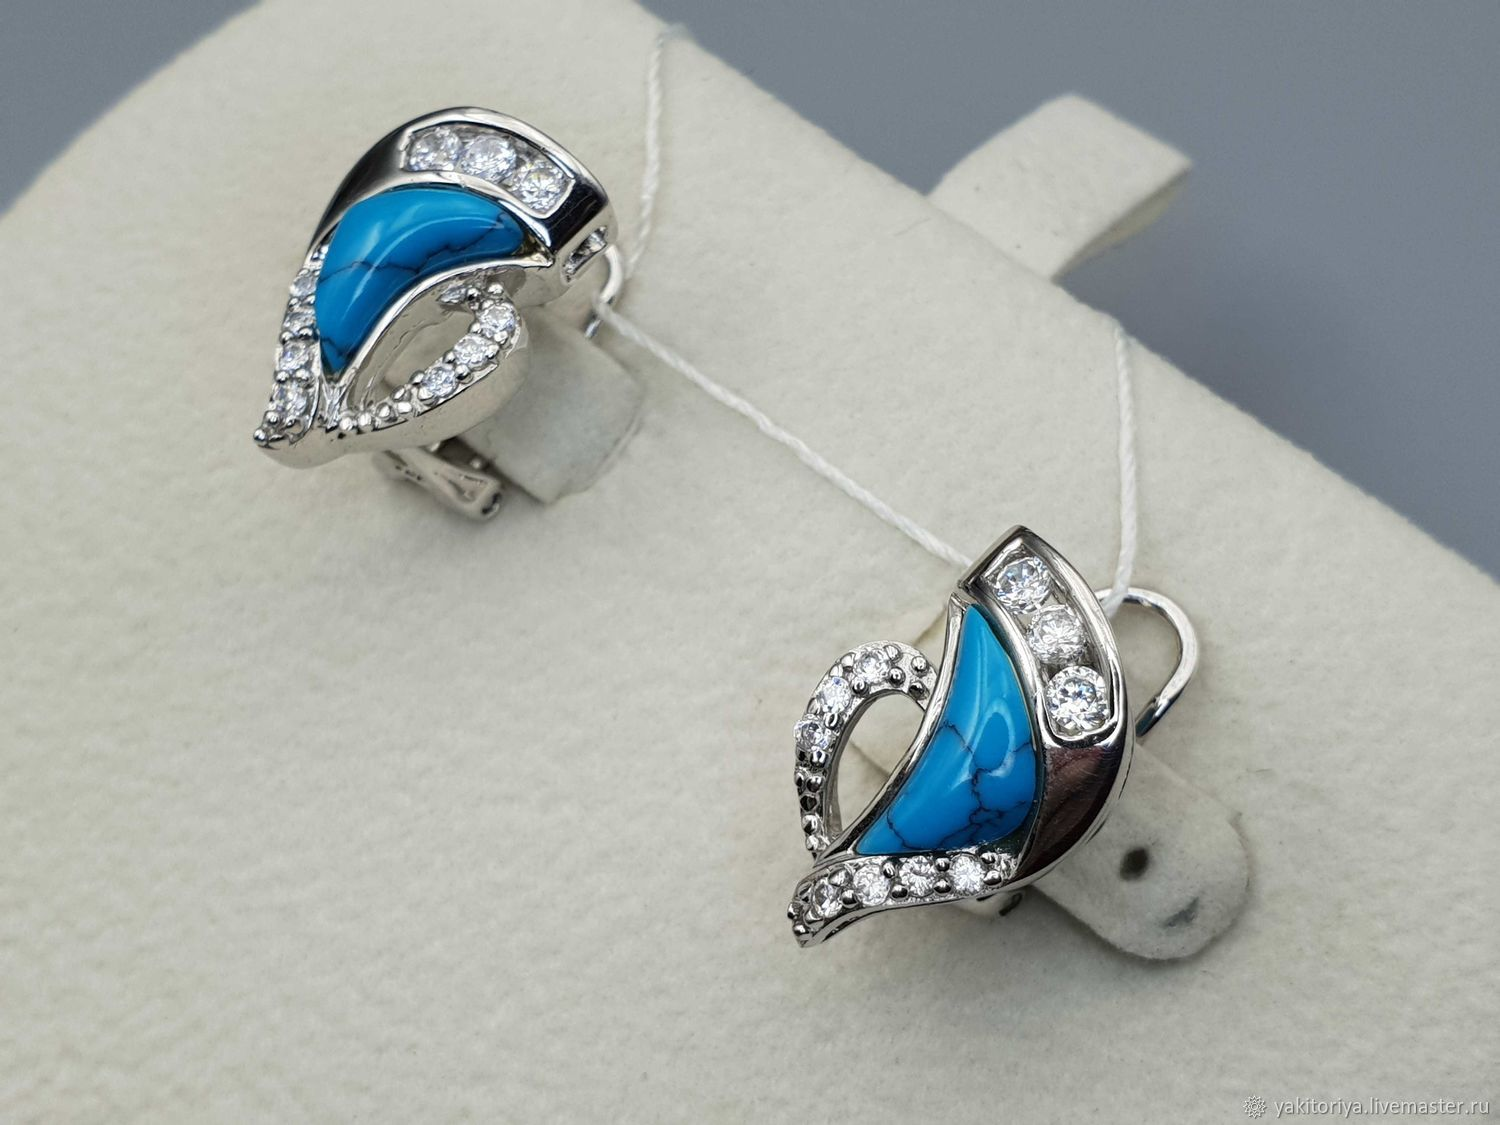 Silver earrings with turquoise 11h7 mm and cubic zirconia, Earrings, Moscow,  Фото №1